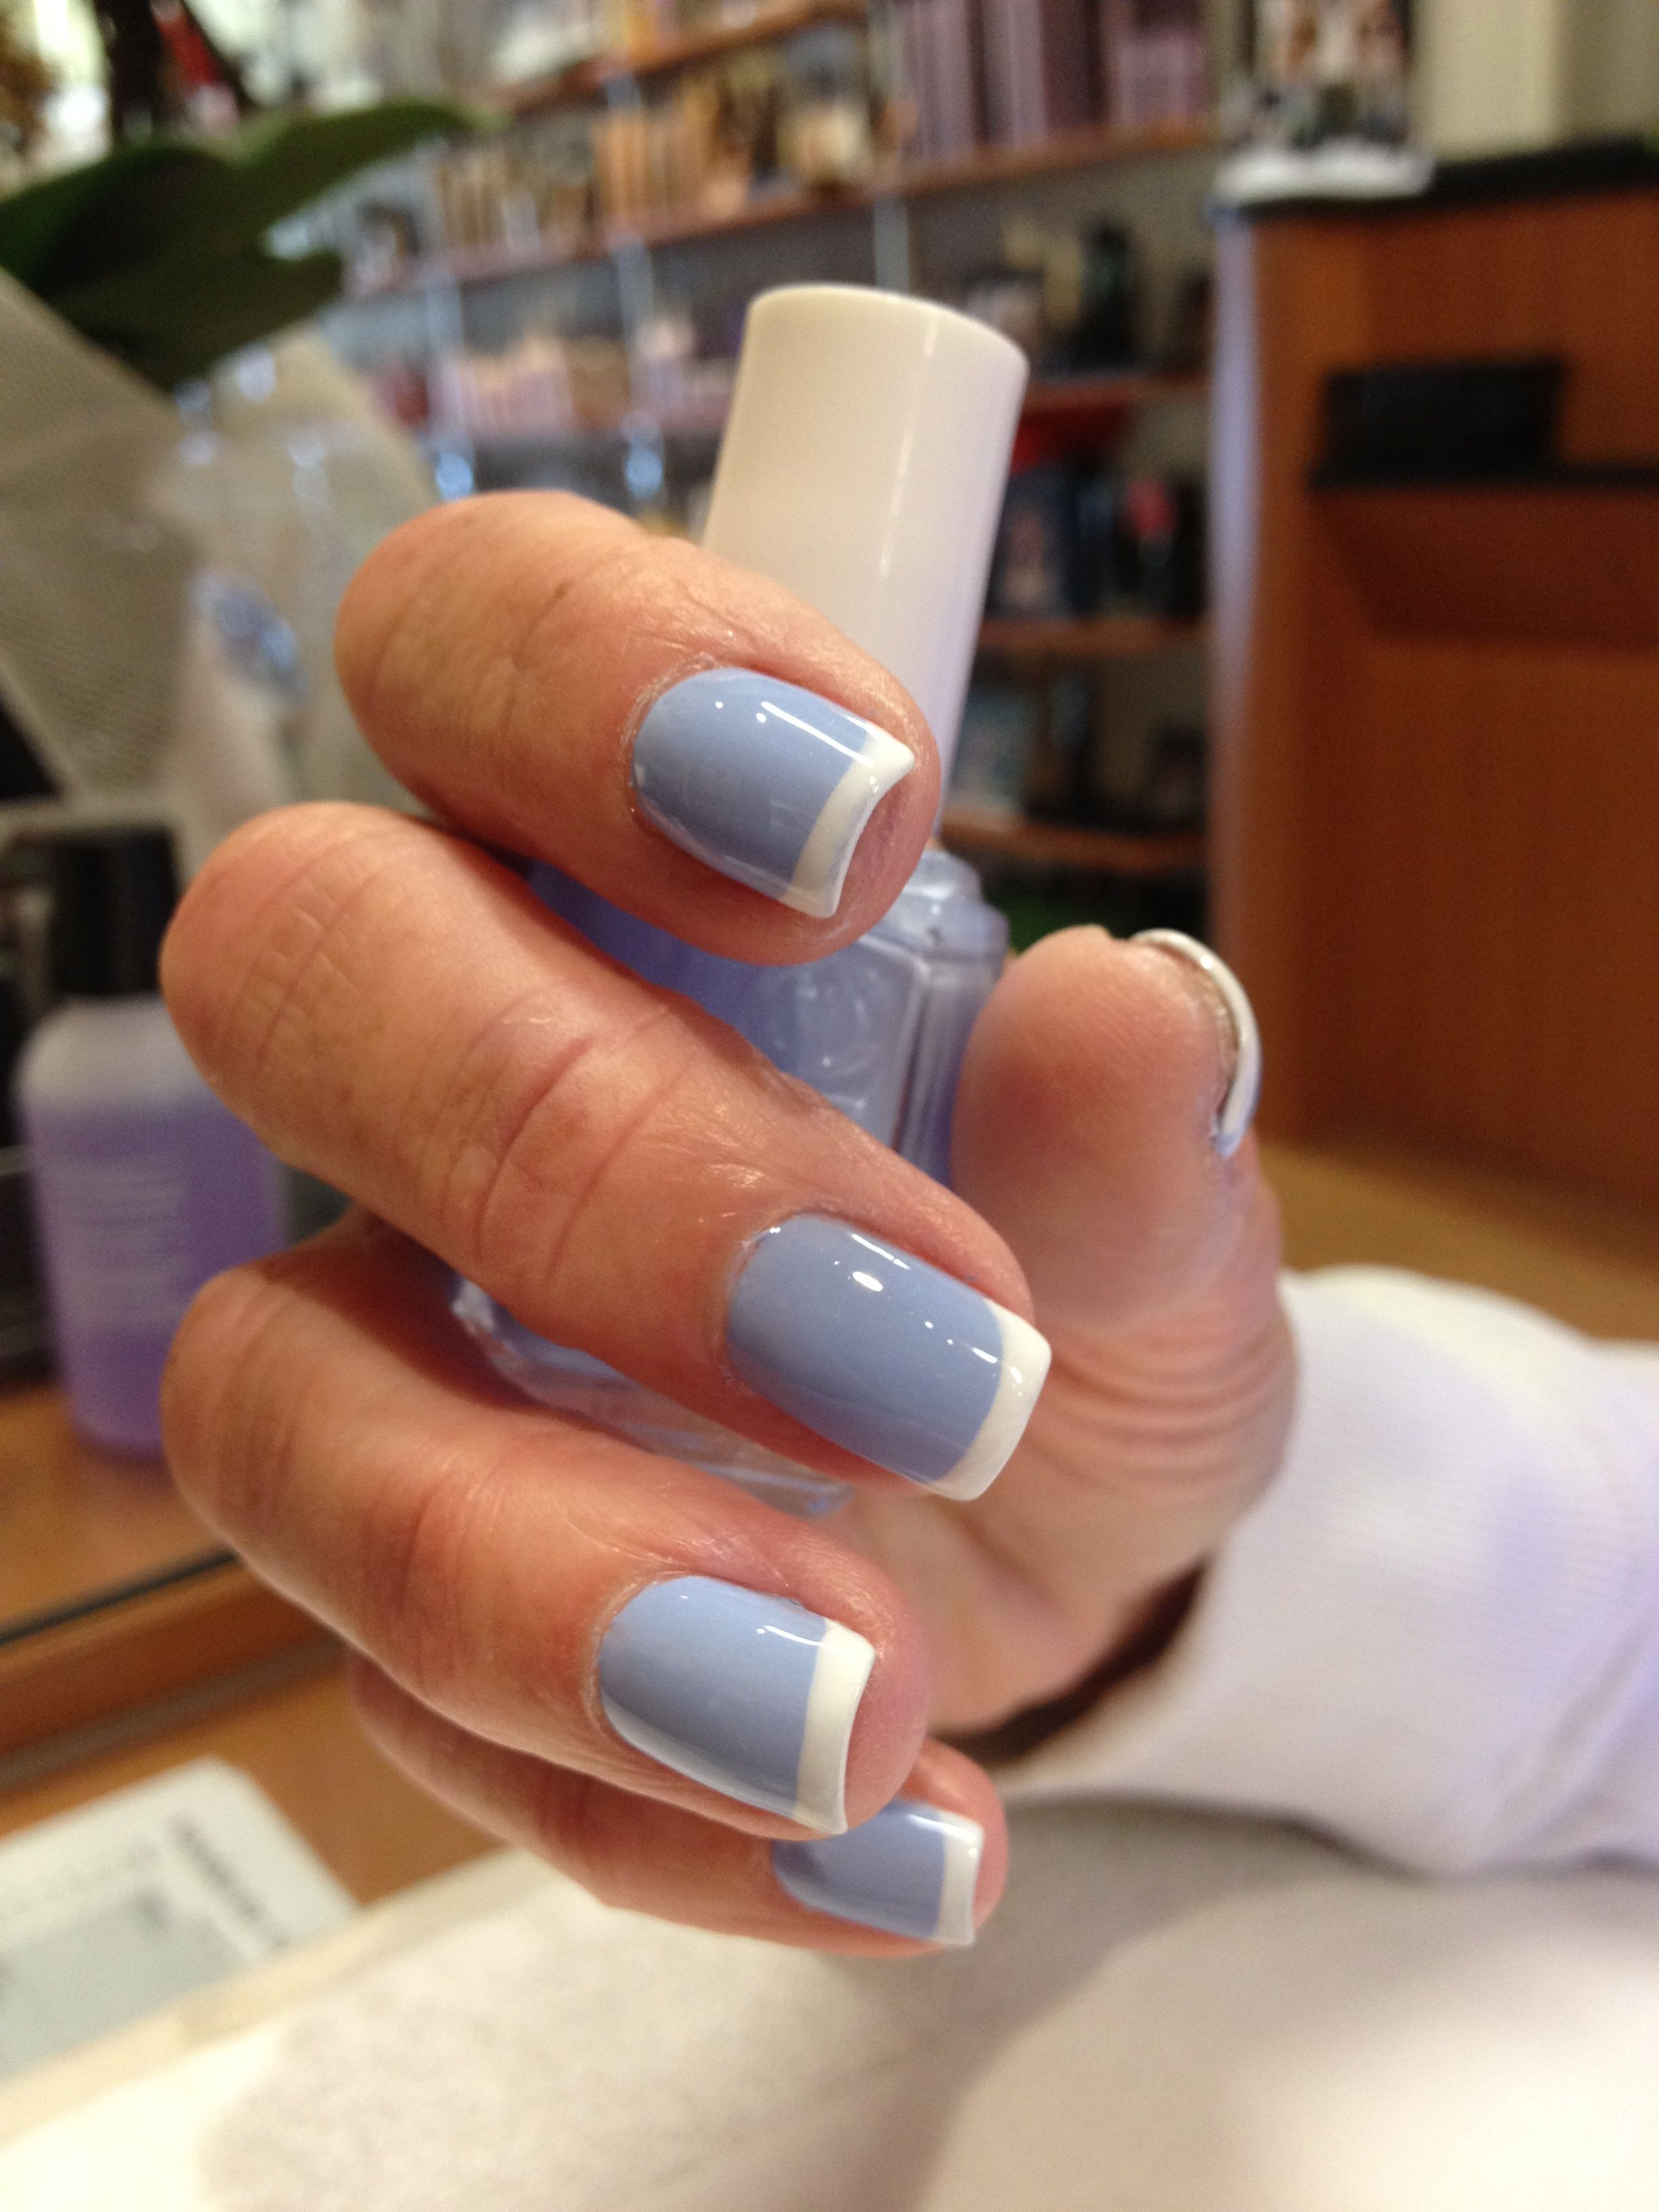 Blue French Manicure Rounded Acrylic Nails French Tip Nails Acrylic Nail Designs